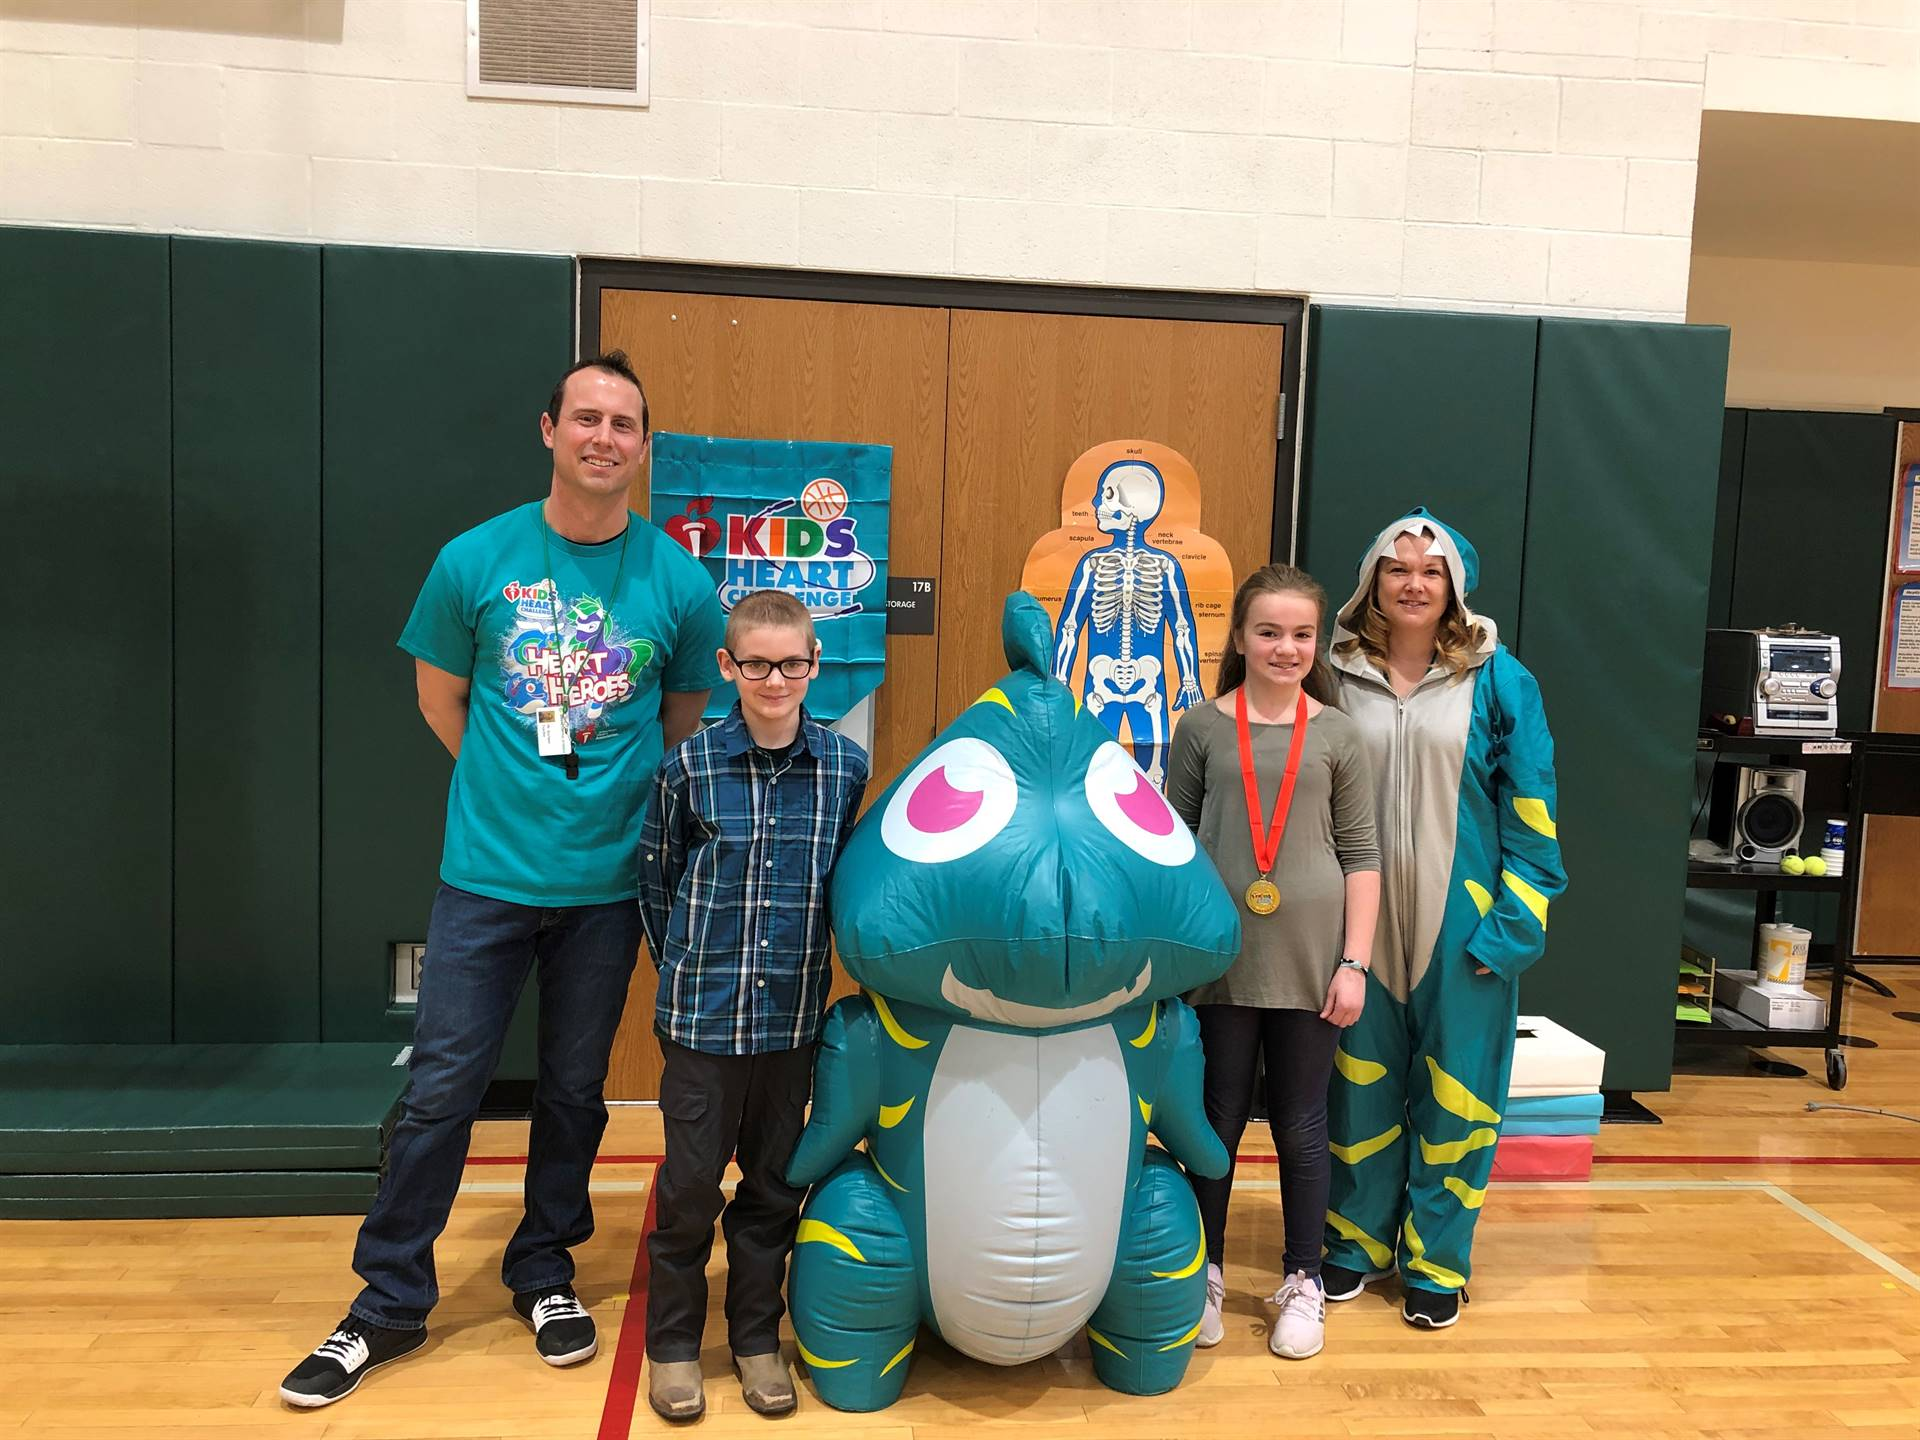 Photo of intermediate students and staff with healthy heart mascot